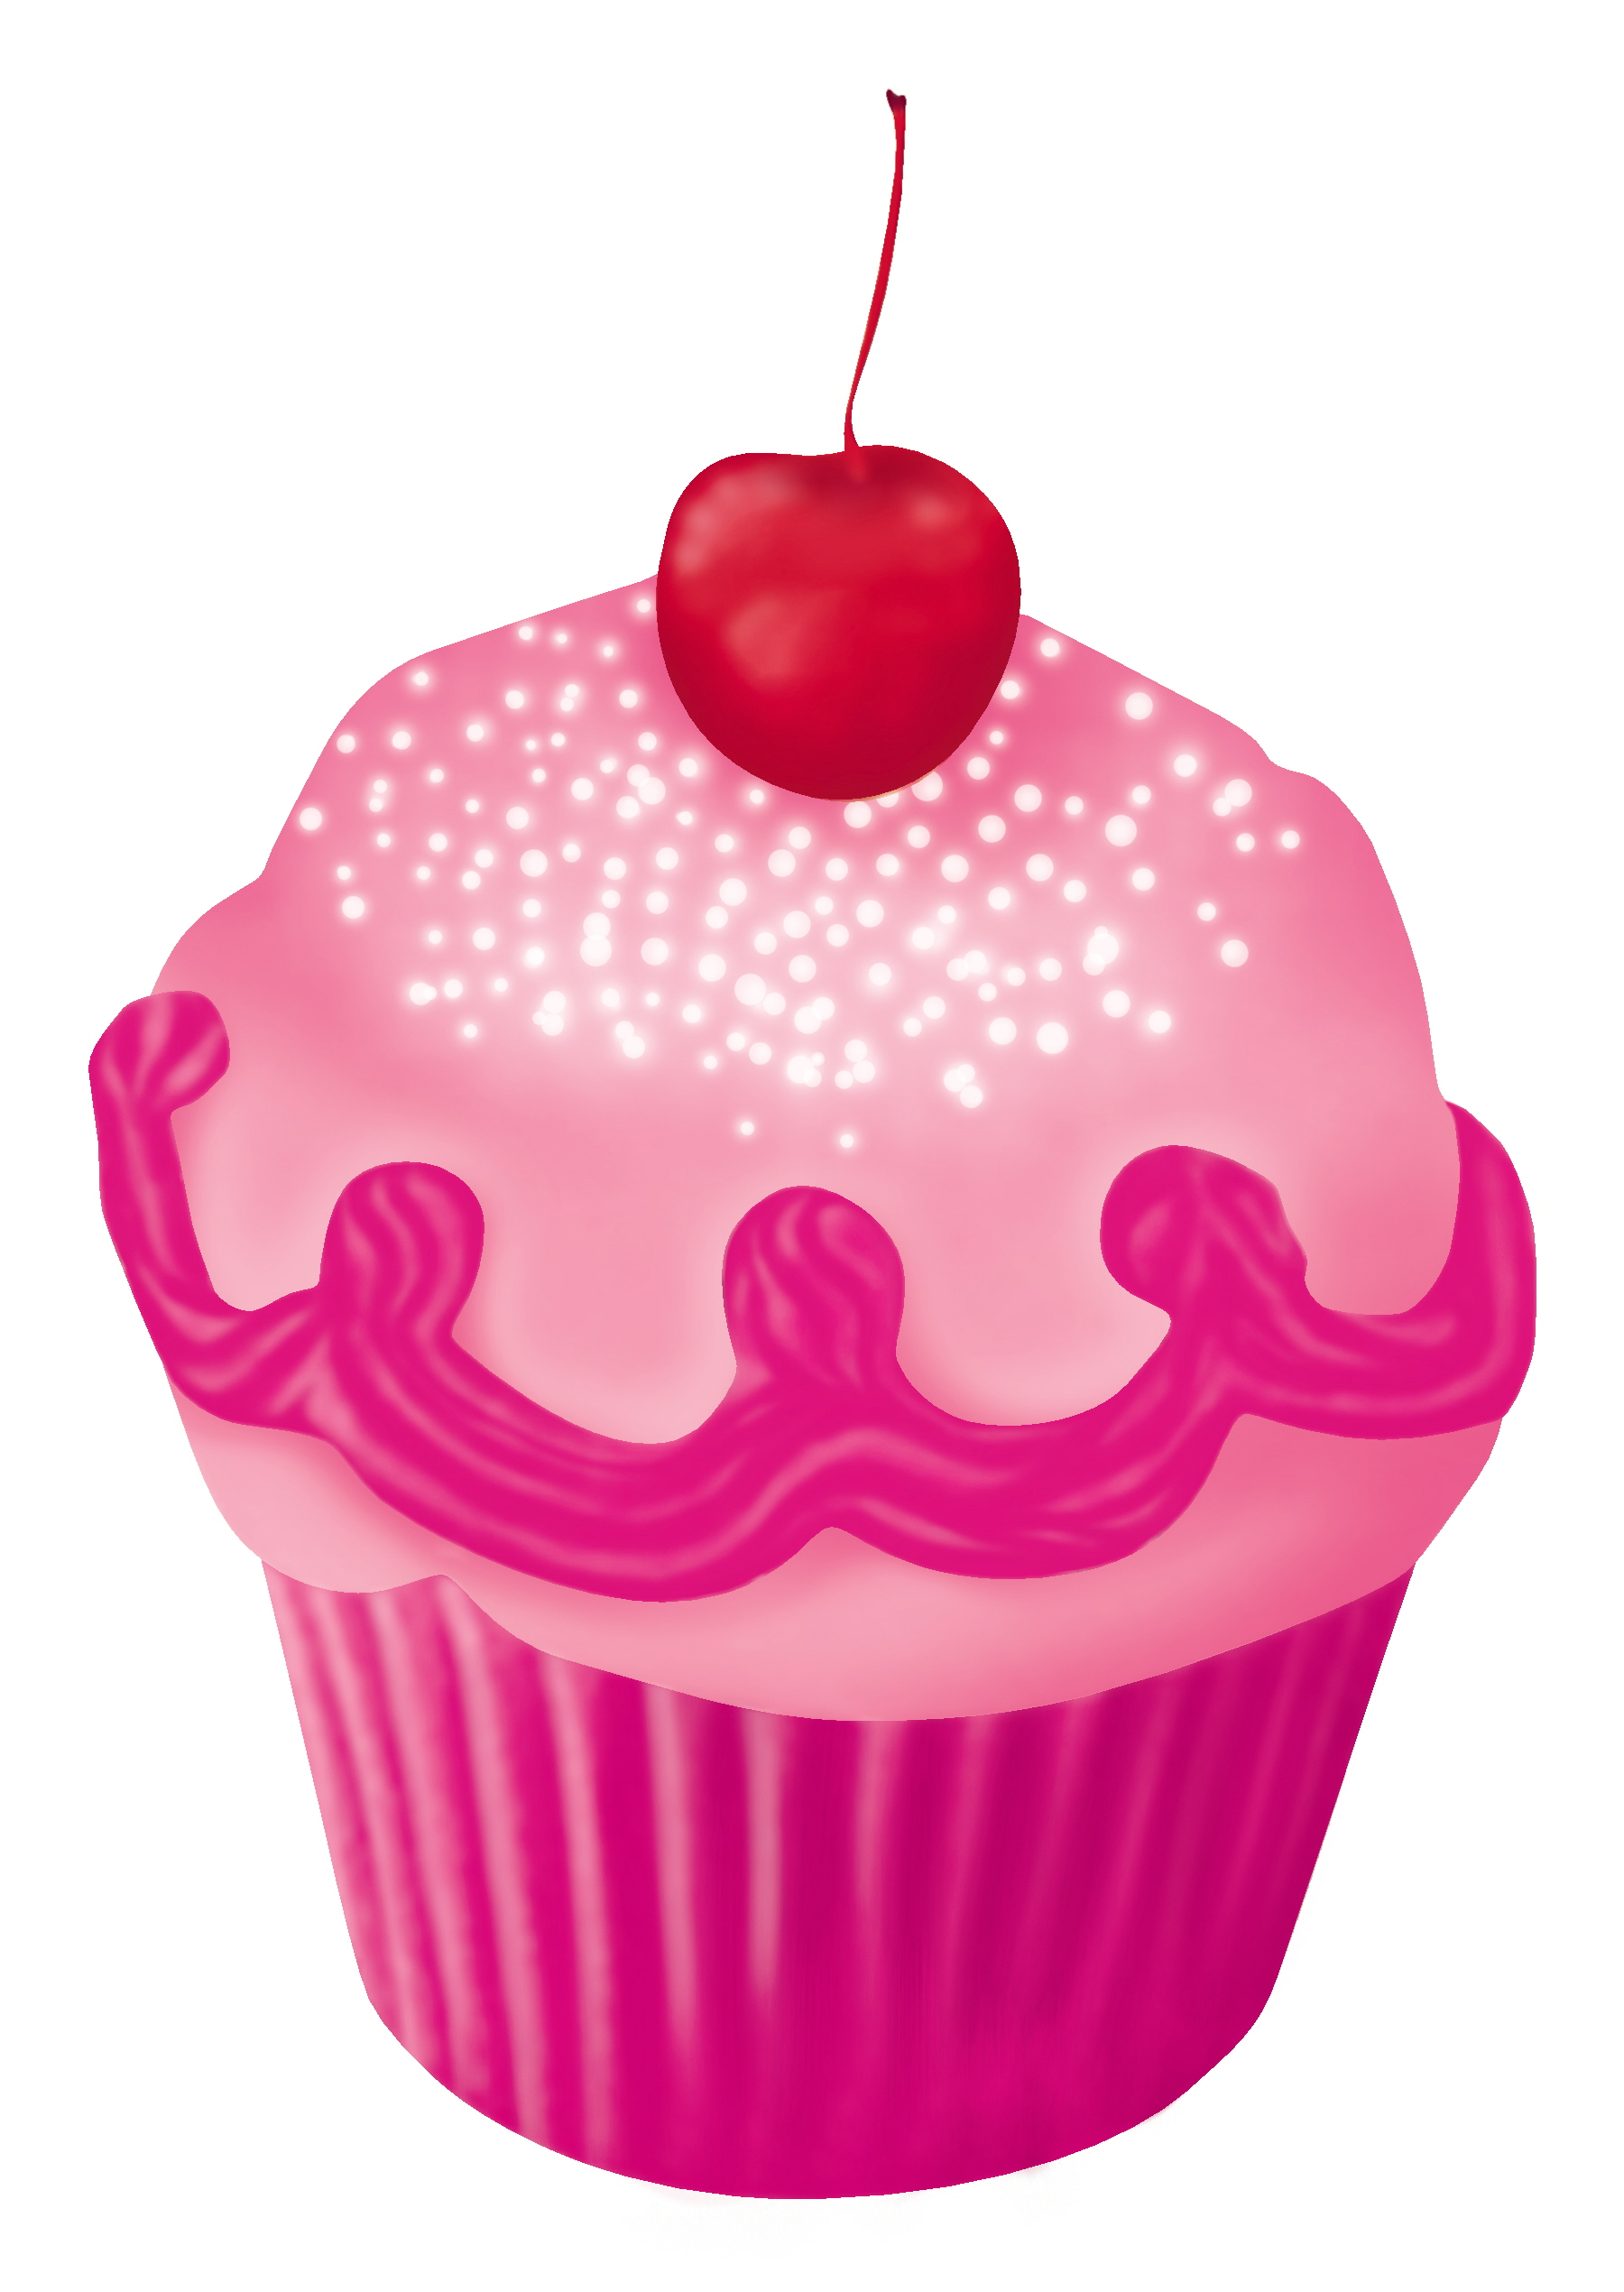 Pinkalicious Cupcake Colouring Pages page 2